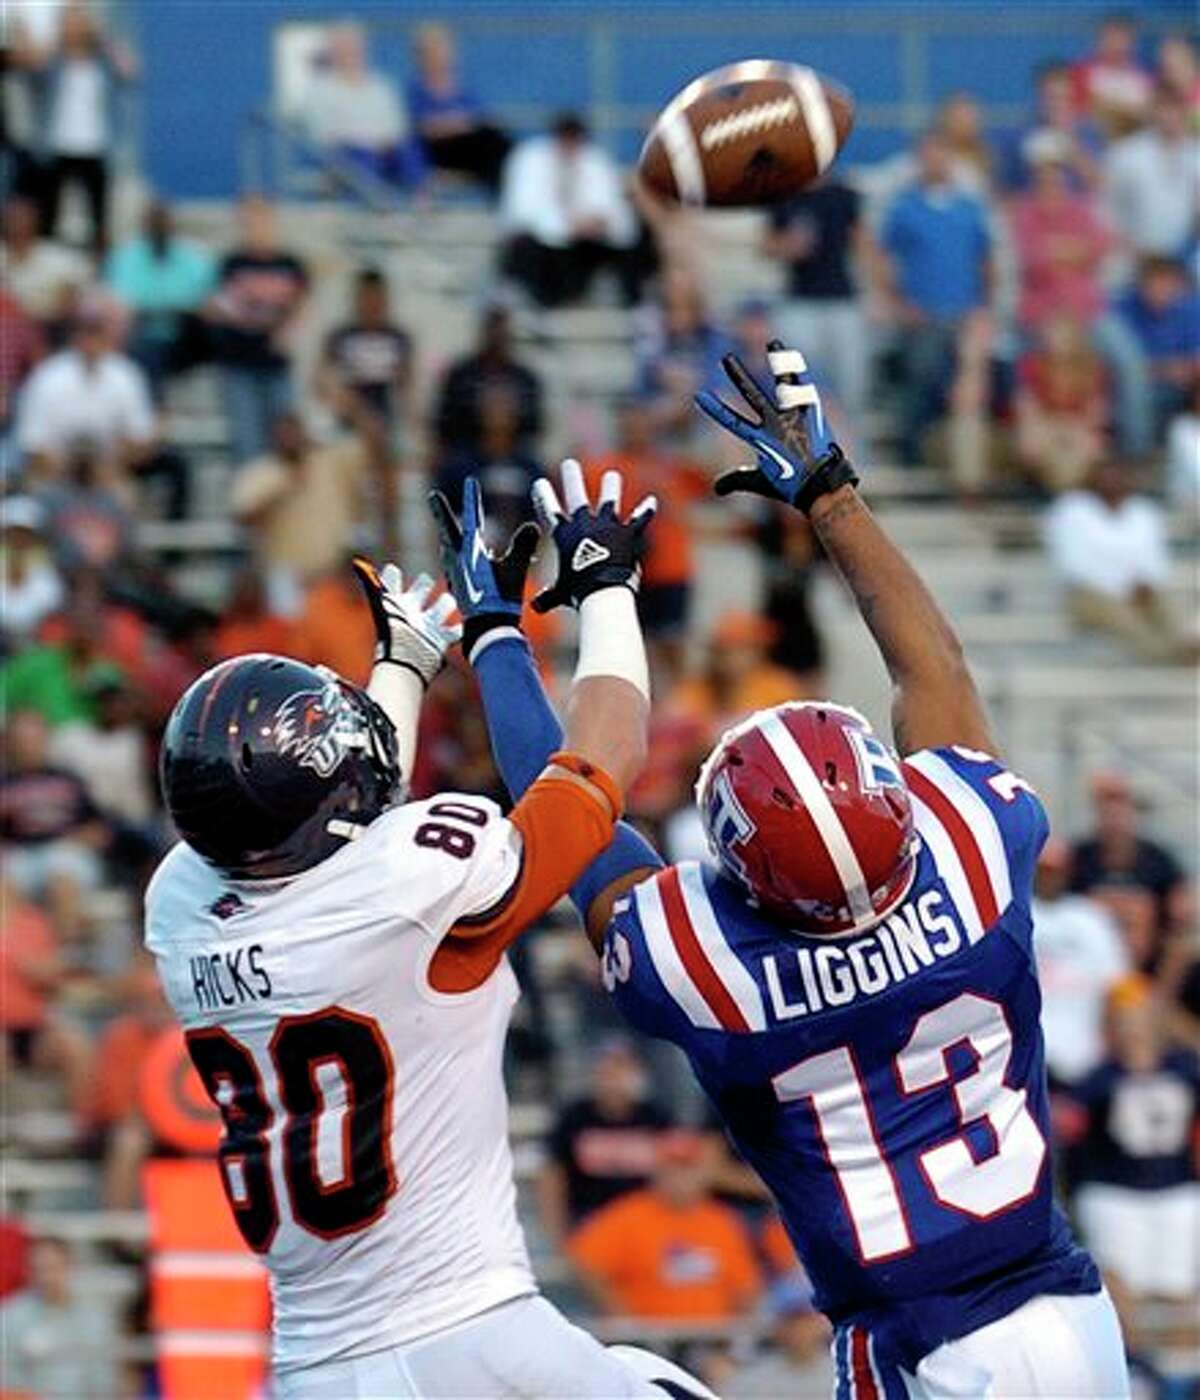 Texas-San Antonio wide receiver Cole Hicks (80) catches a touchdown pass over Louisiana Tech defensive back Le'Vander Liggins (13) during an NCAA college football game in Ruston, La., Saturday, Nov. 3, 2012. Louisiana Tech won 51-27. (AP Photo/Kita Wright)